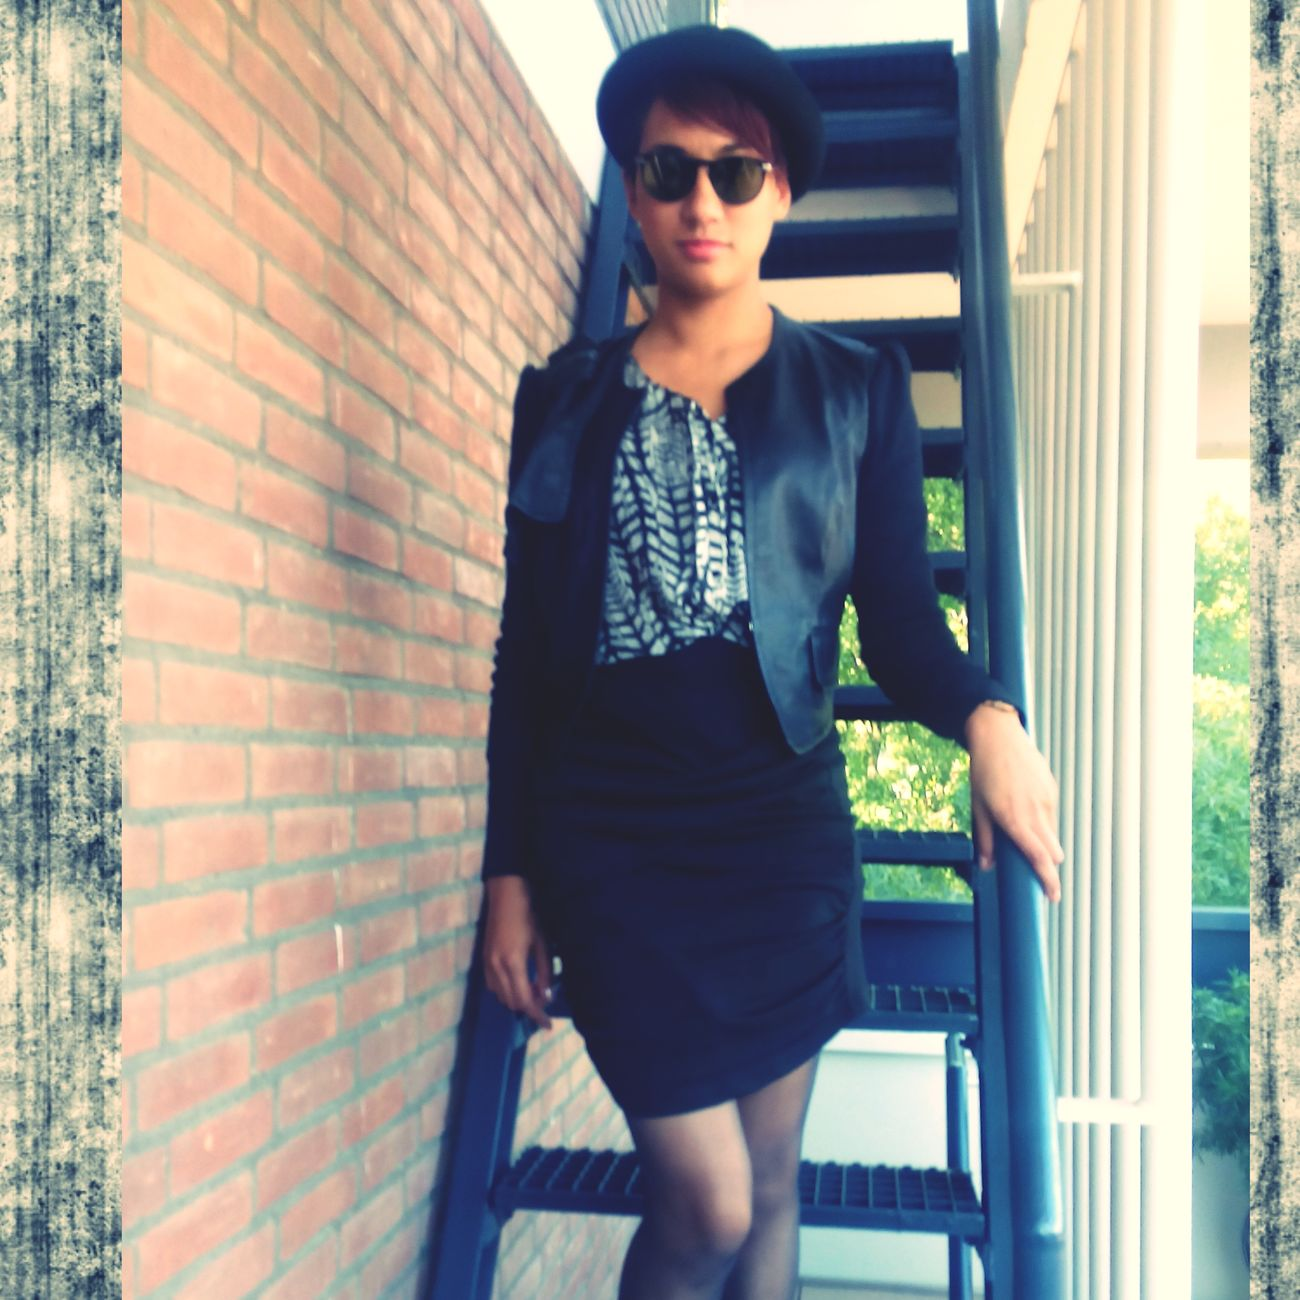 Dress For Success Just Me l Independent Woman Today's Hot Look